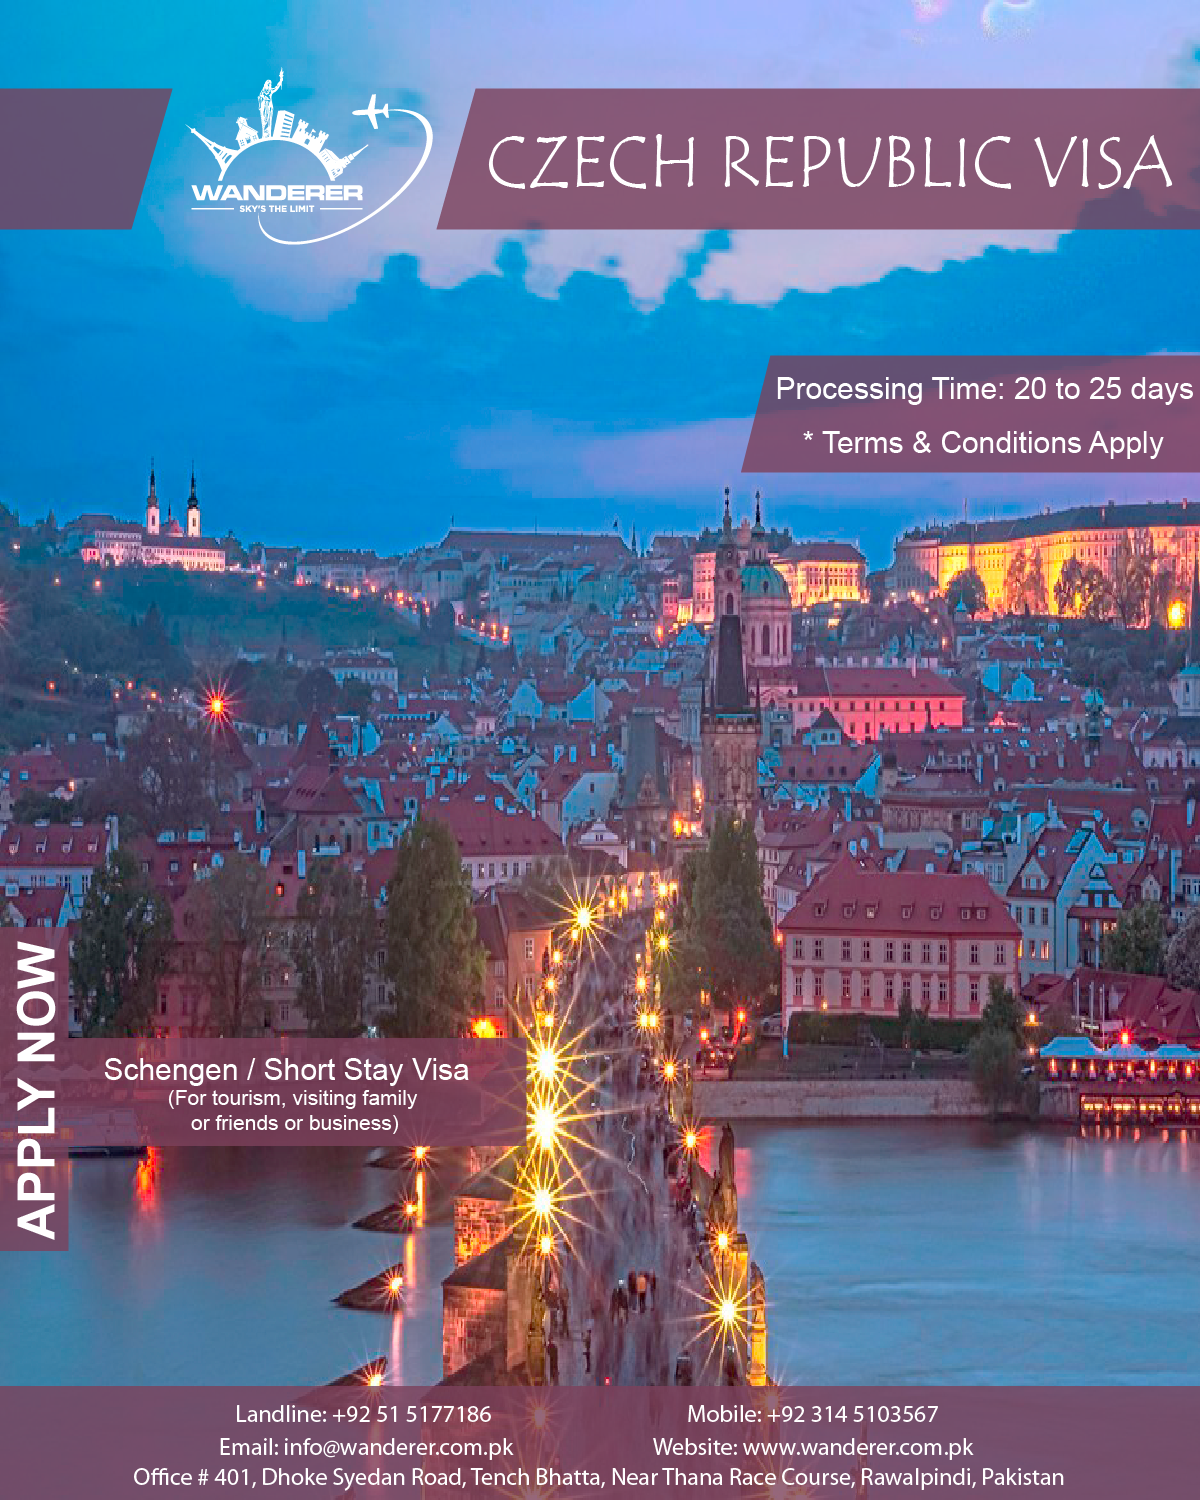 Apply Now For Czech Republic Schengen Short Stay Visa For The Purpose Of Tourism Visiting Family Or Friends Or Business In 2020 Tourism Travel Agency Czech Republic